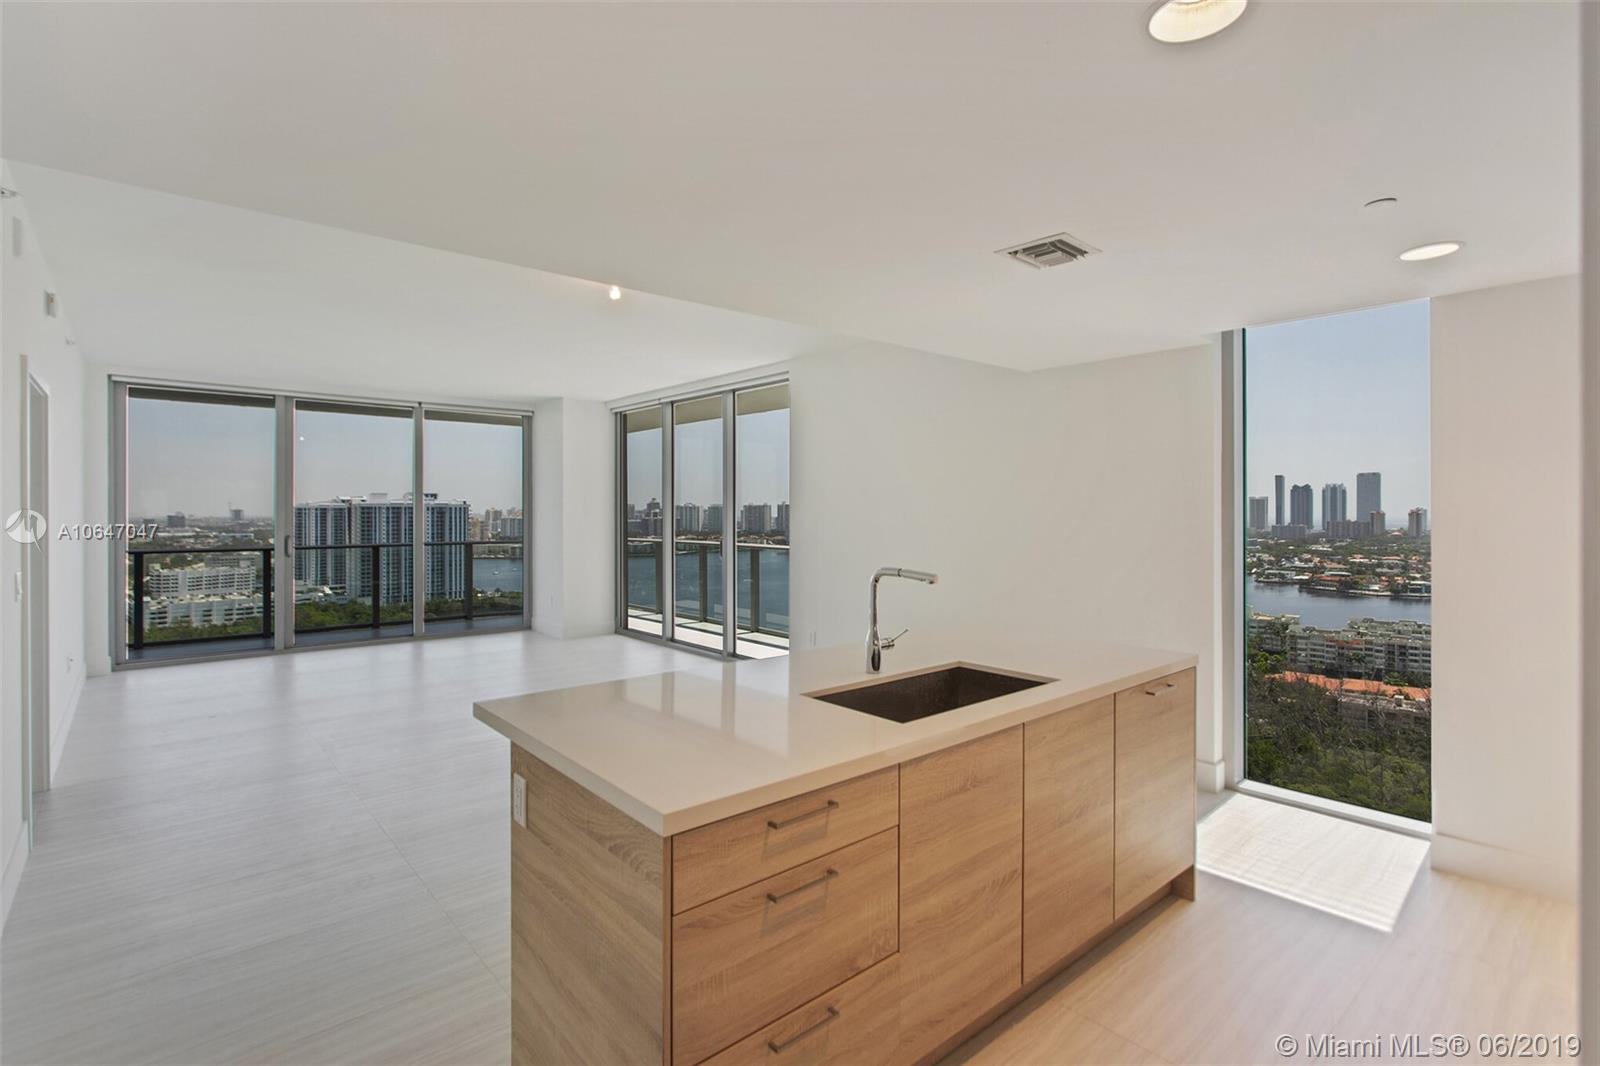 16385 Biscayne Blvd #2507 Property Photo